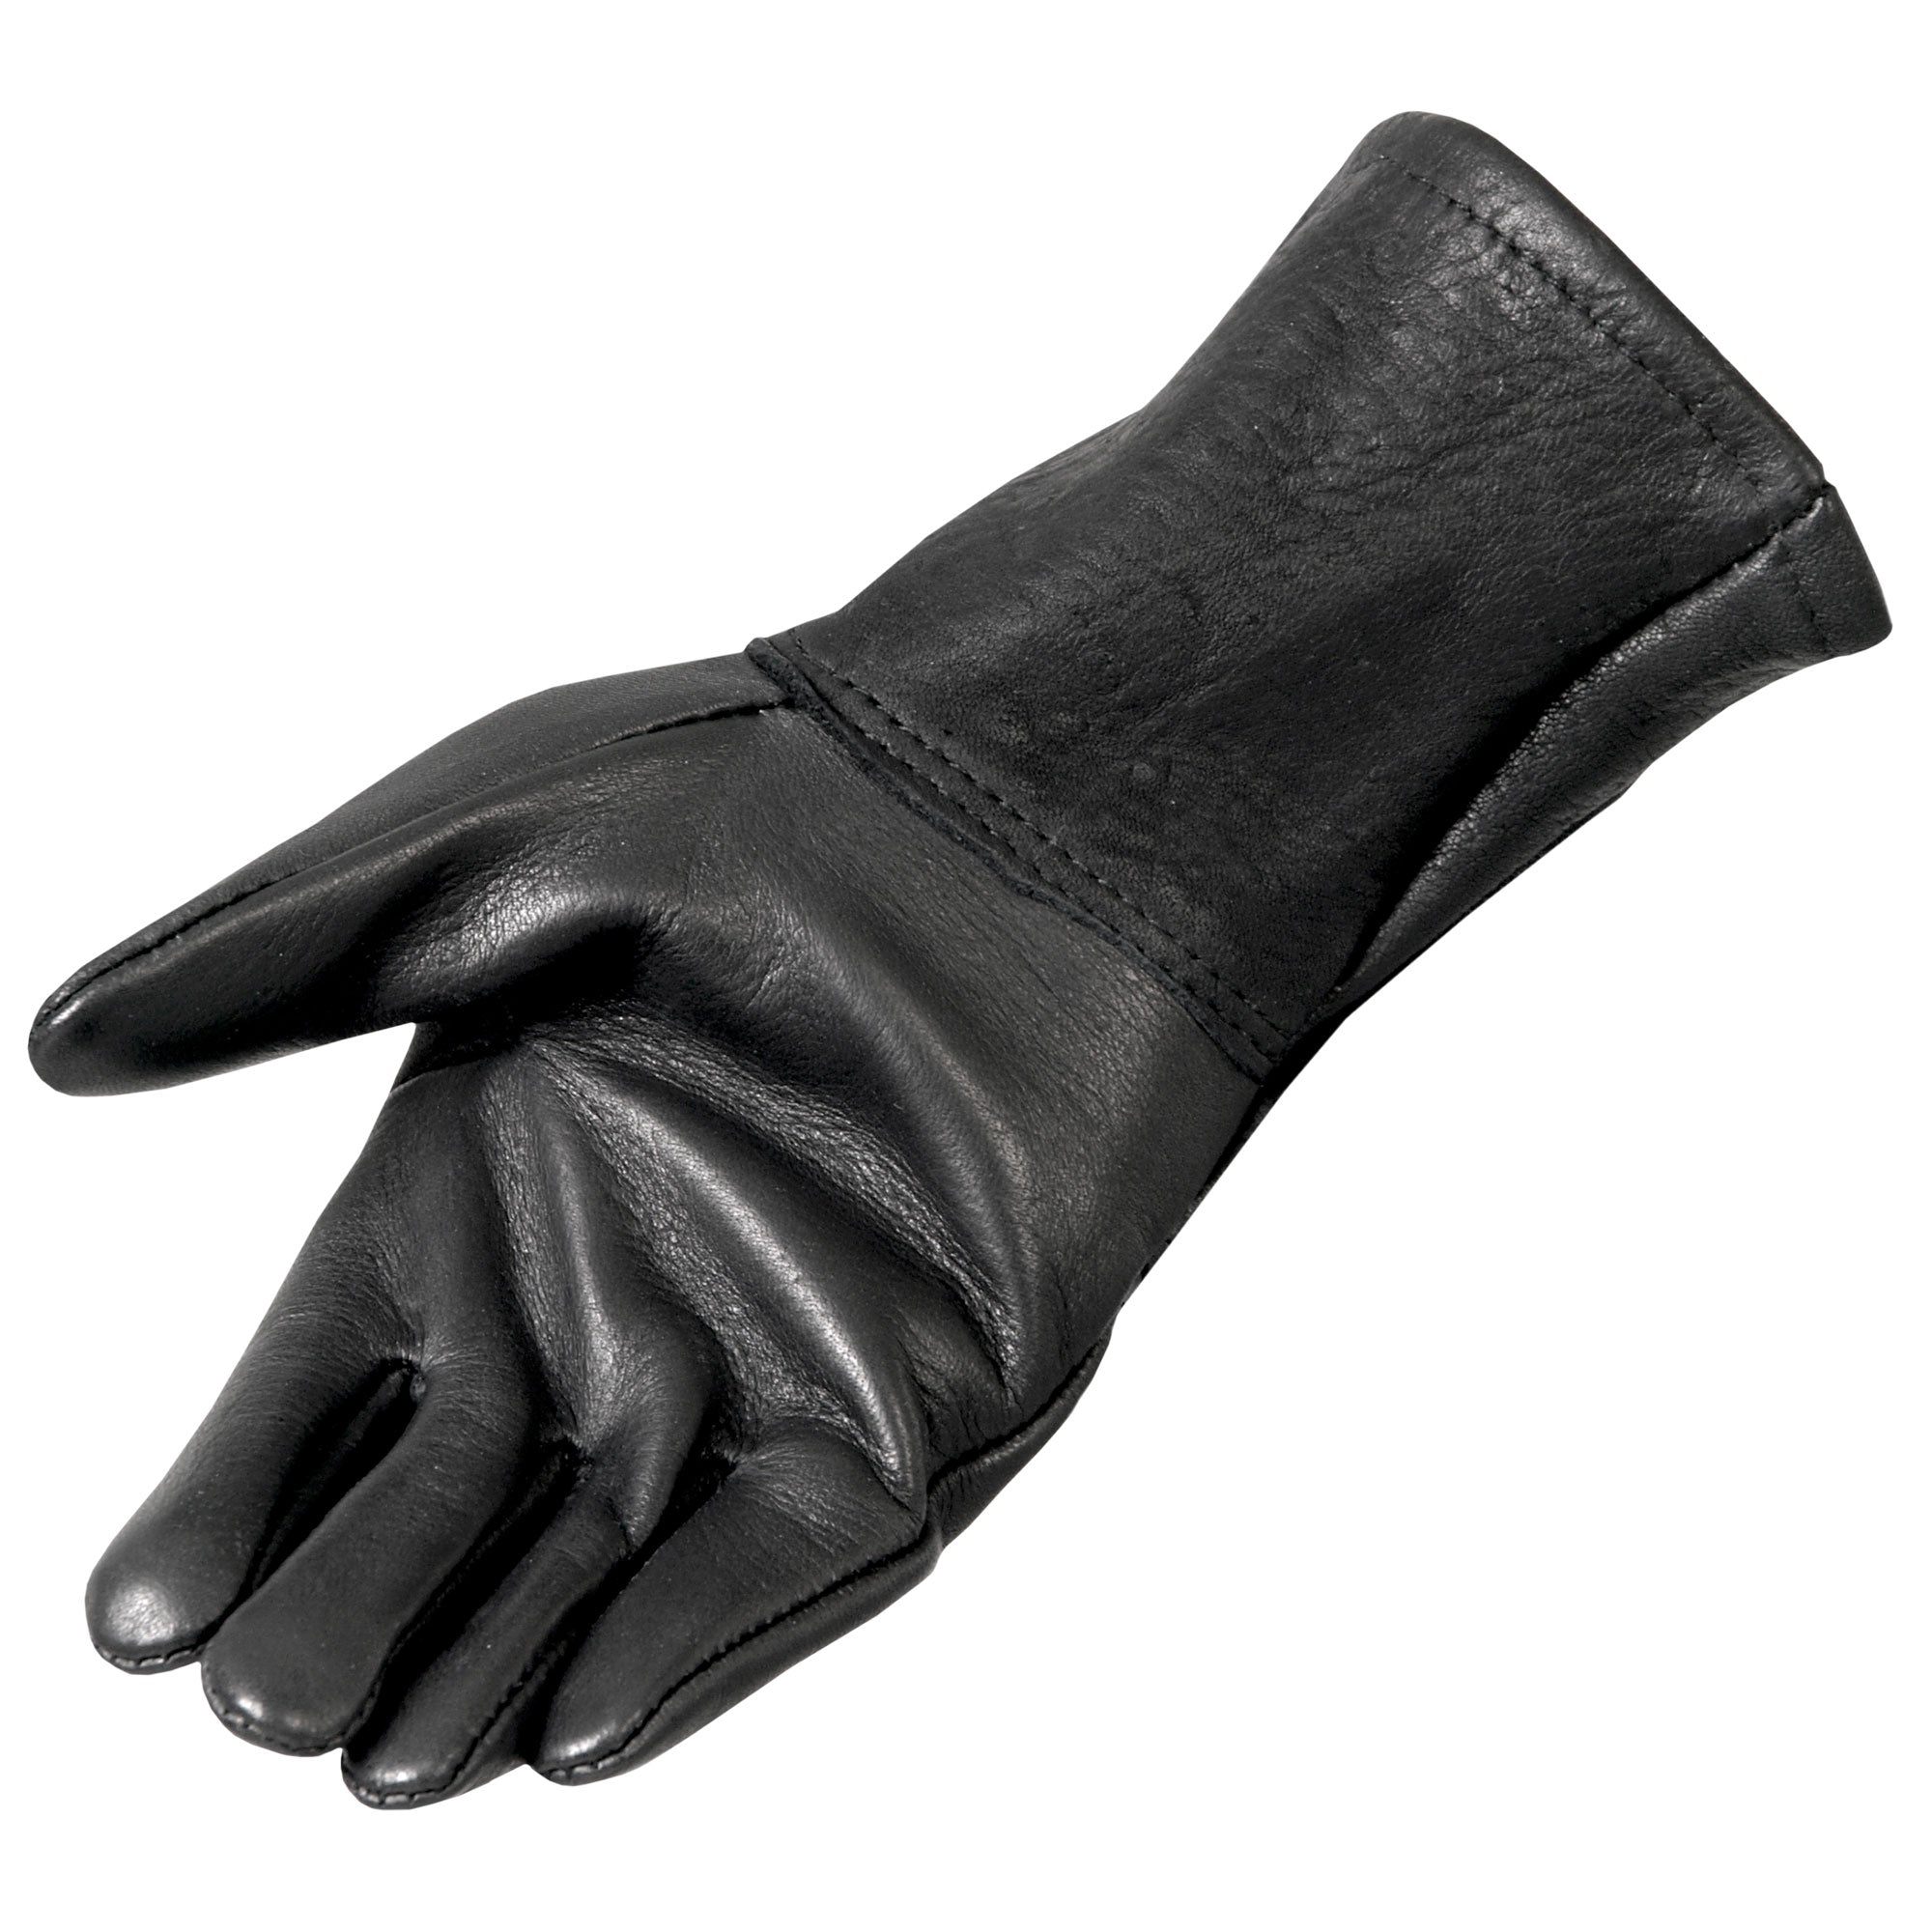 Hot Leathers Classic Deerskin Gauntlet Glove